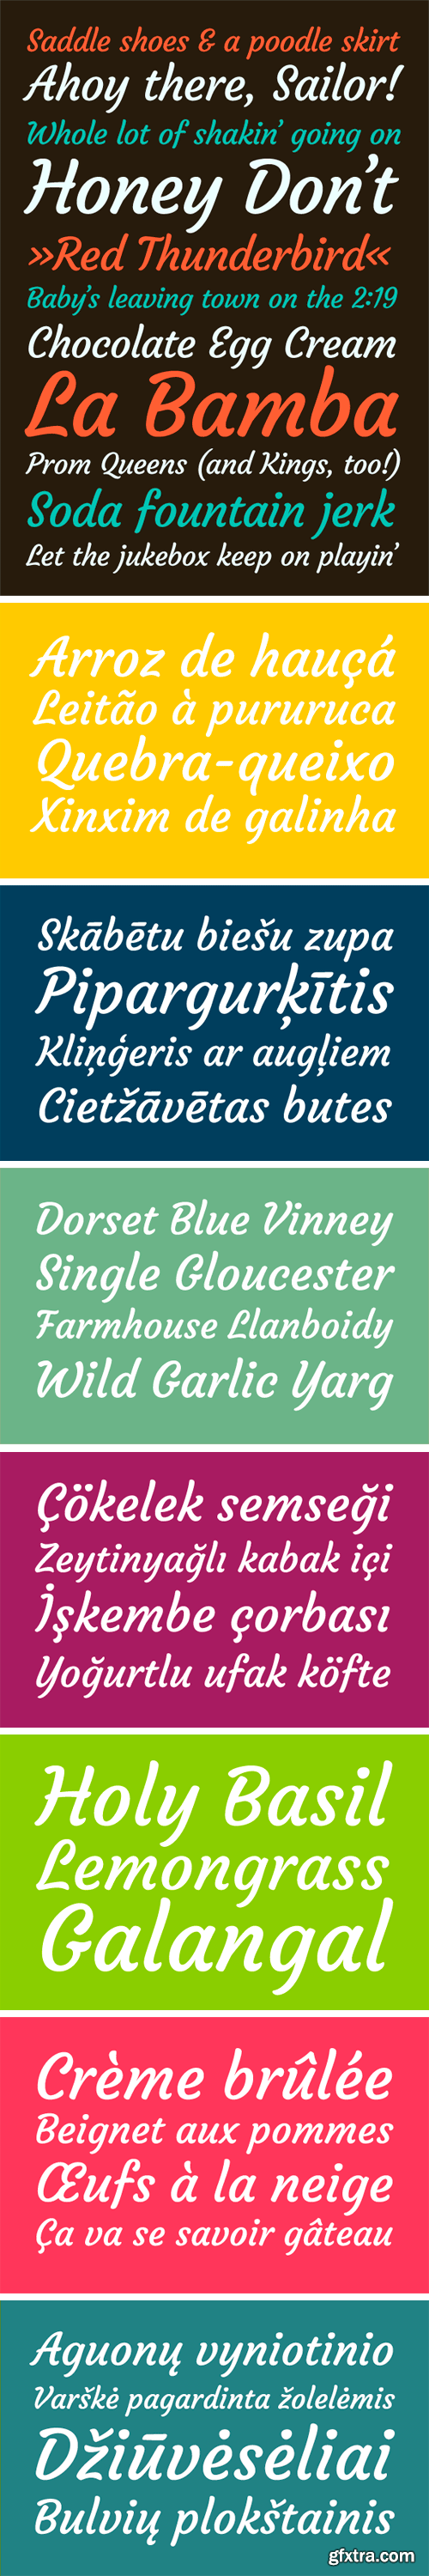 Courgette Typeface